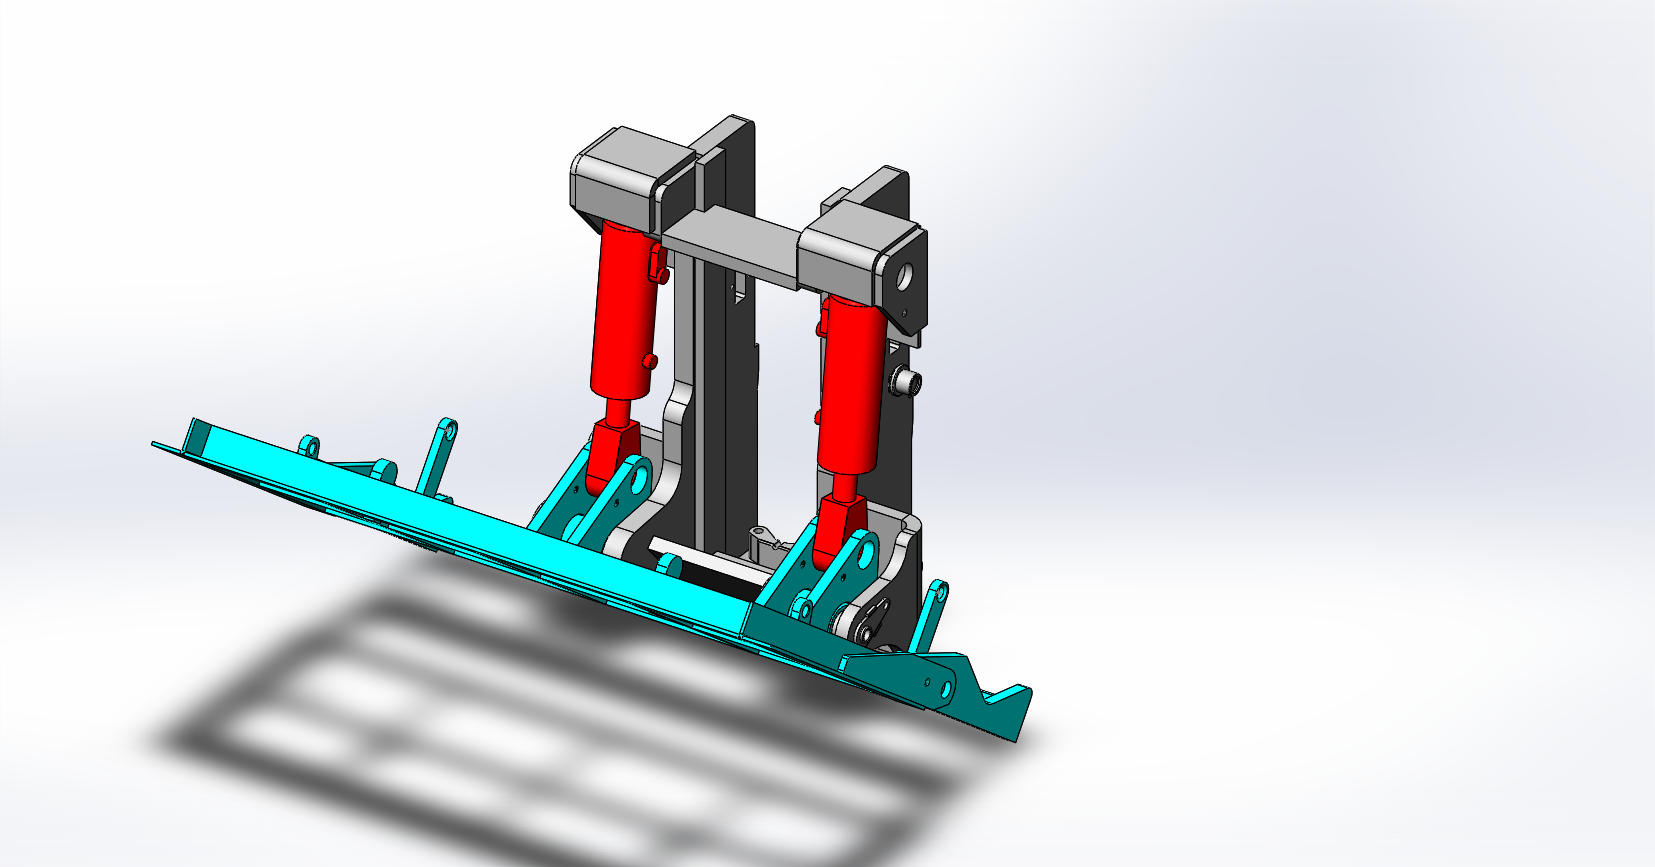 Axon Forklift: Tipping Carriage / Loading Bucket-10